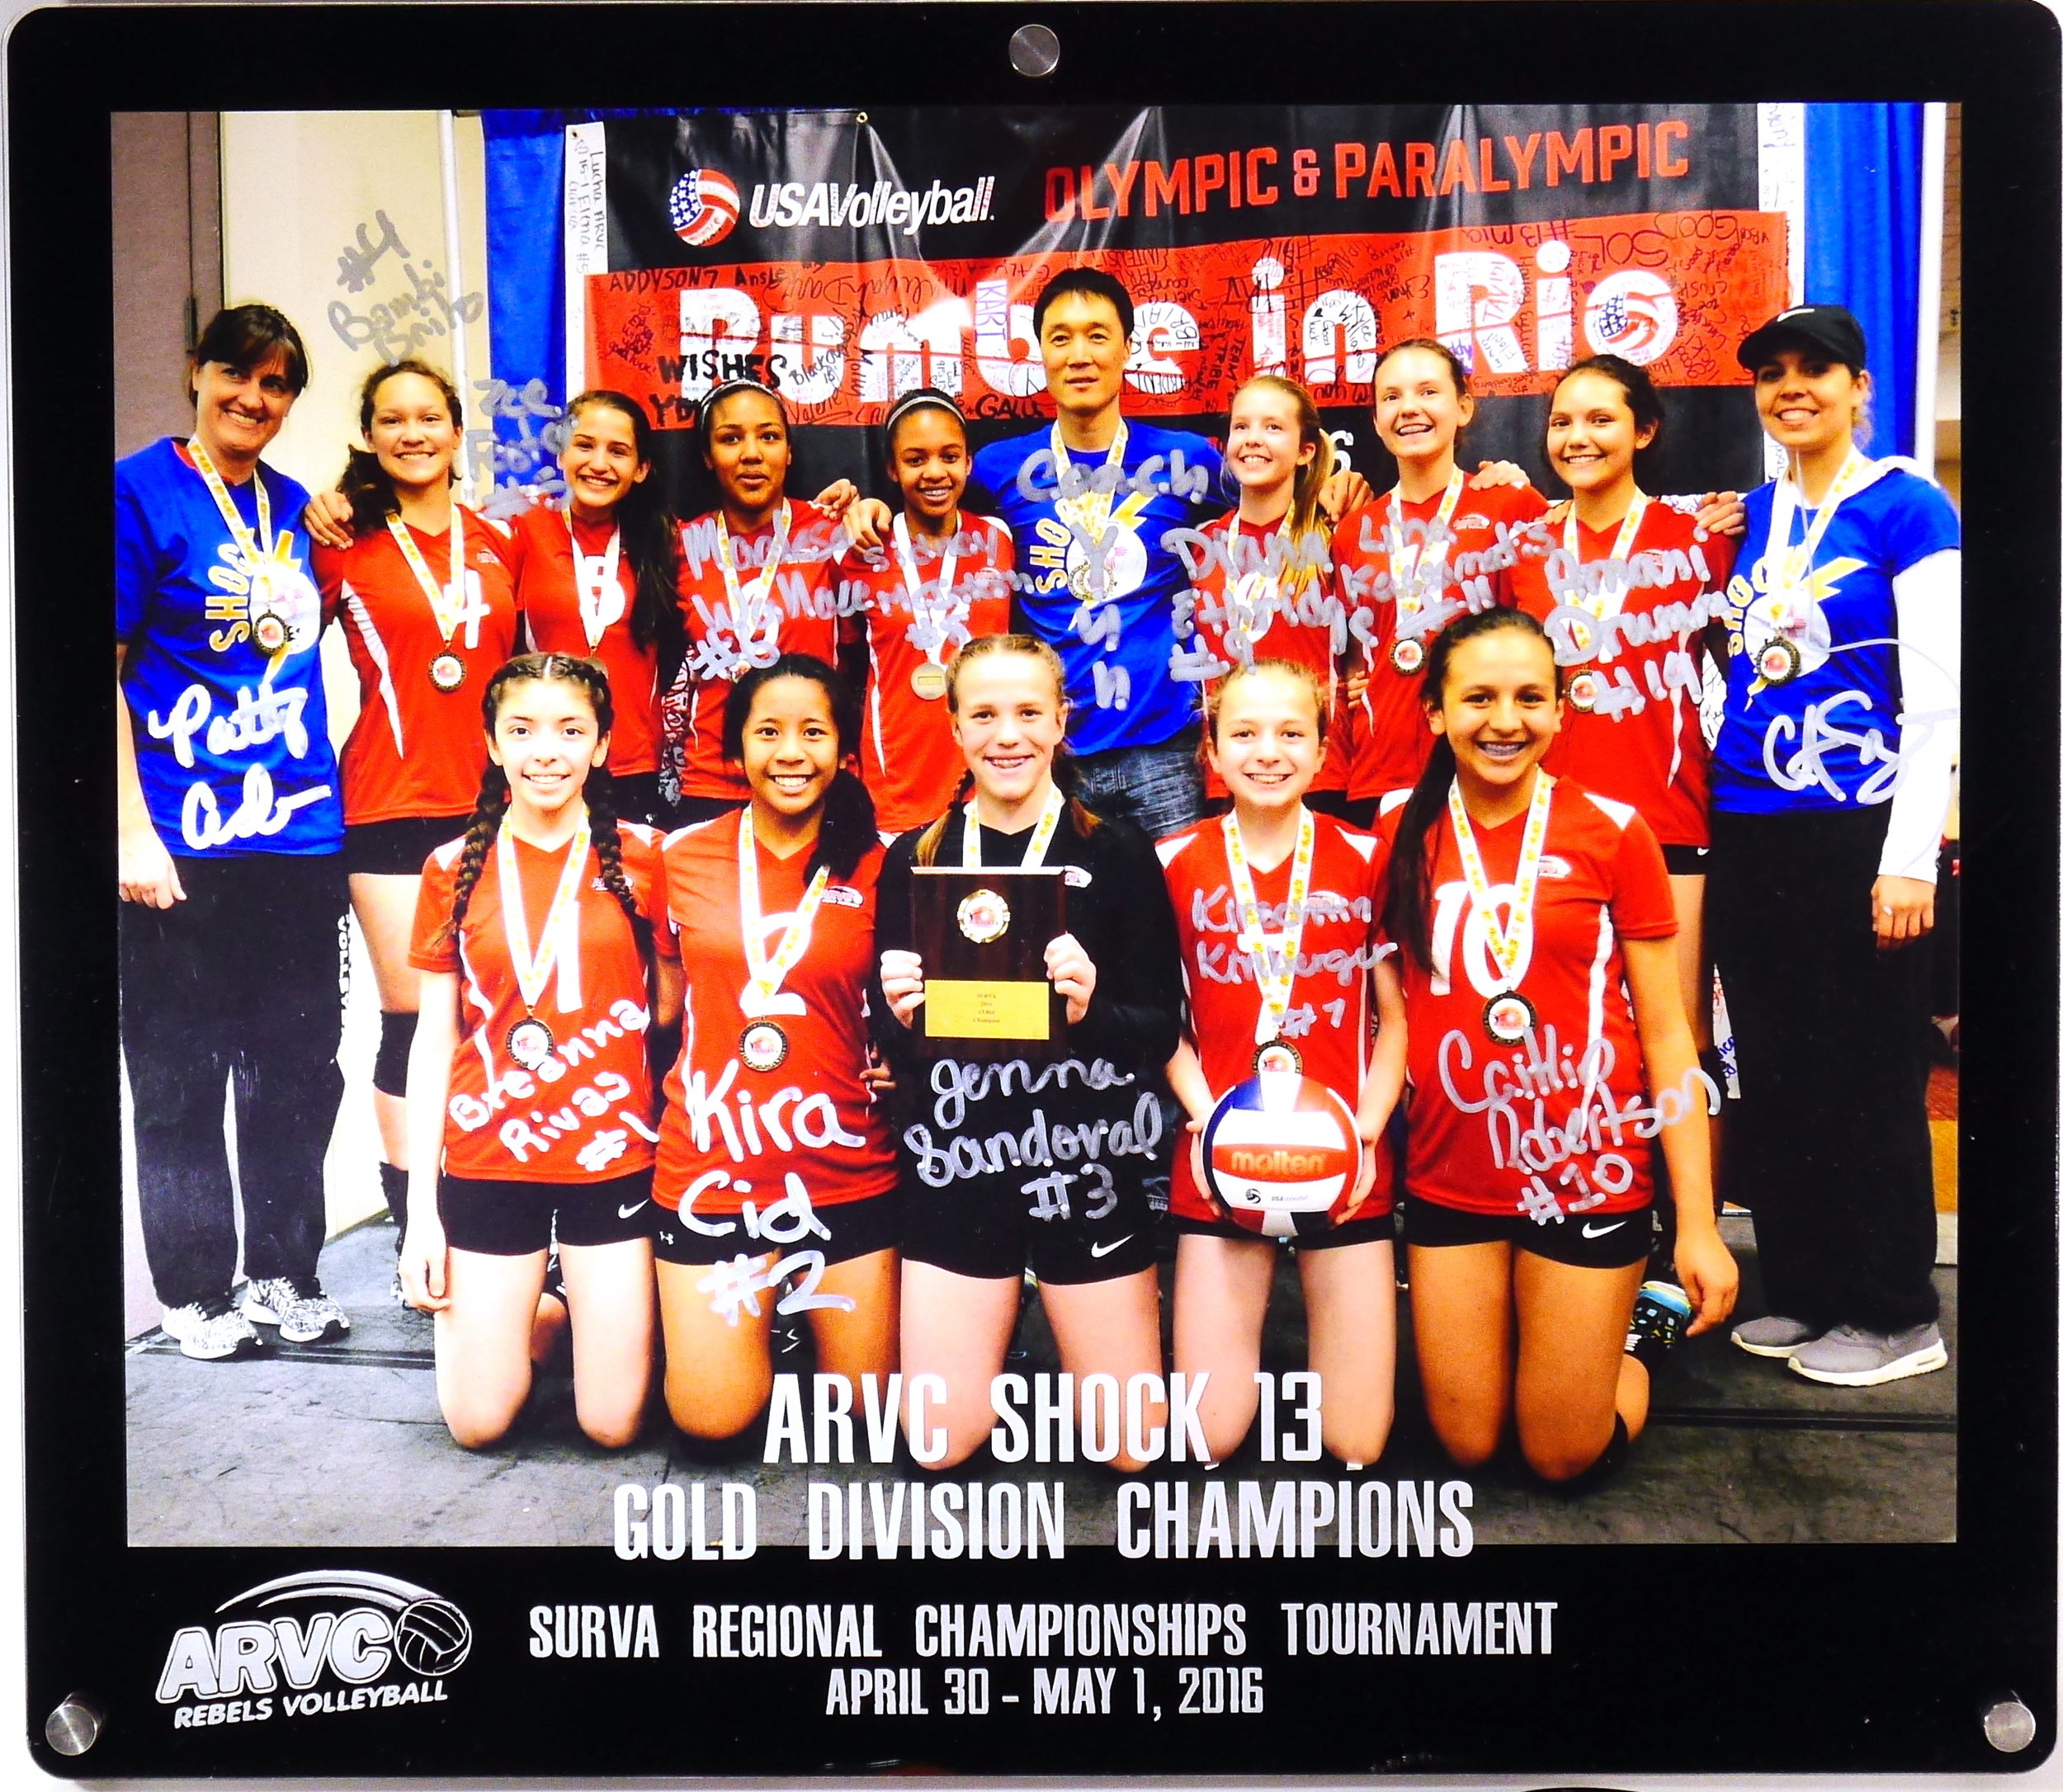 8x10 Landscape Frame - 2-layer acrylic, Tournament Achievement Award/Frame, custom etch includes Team, Club, & Event names and date,  Logo of Club putting on event.  Frame has been signed by team and coaches in Sharpie.  Contact us for pricing information.